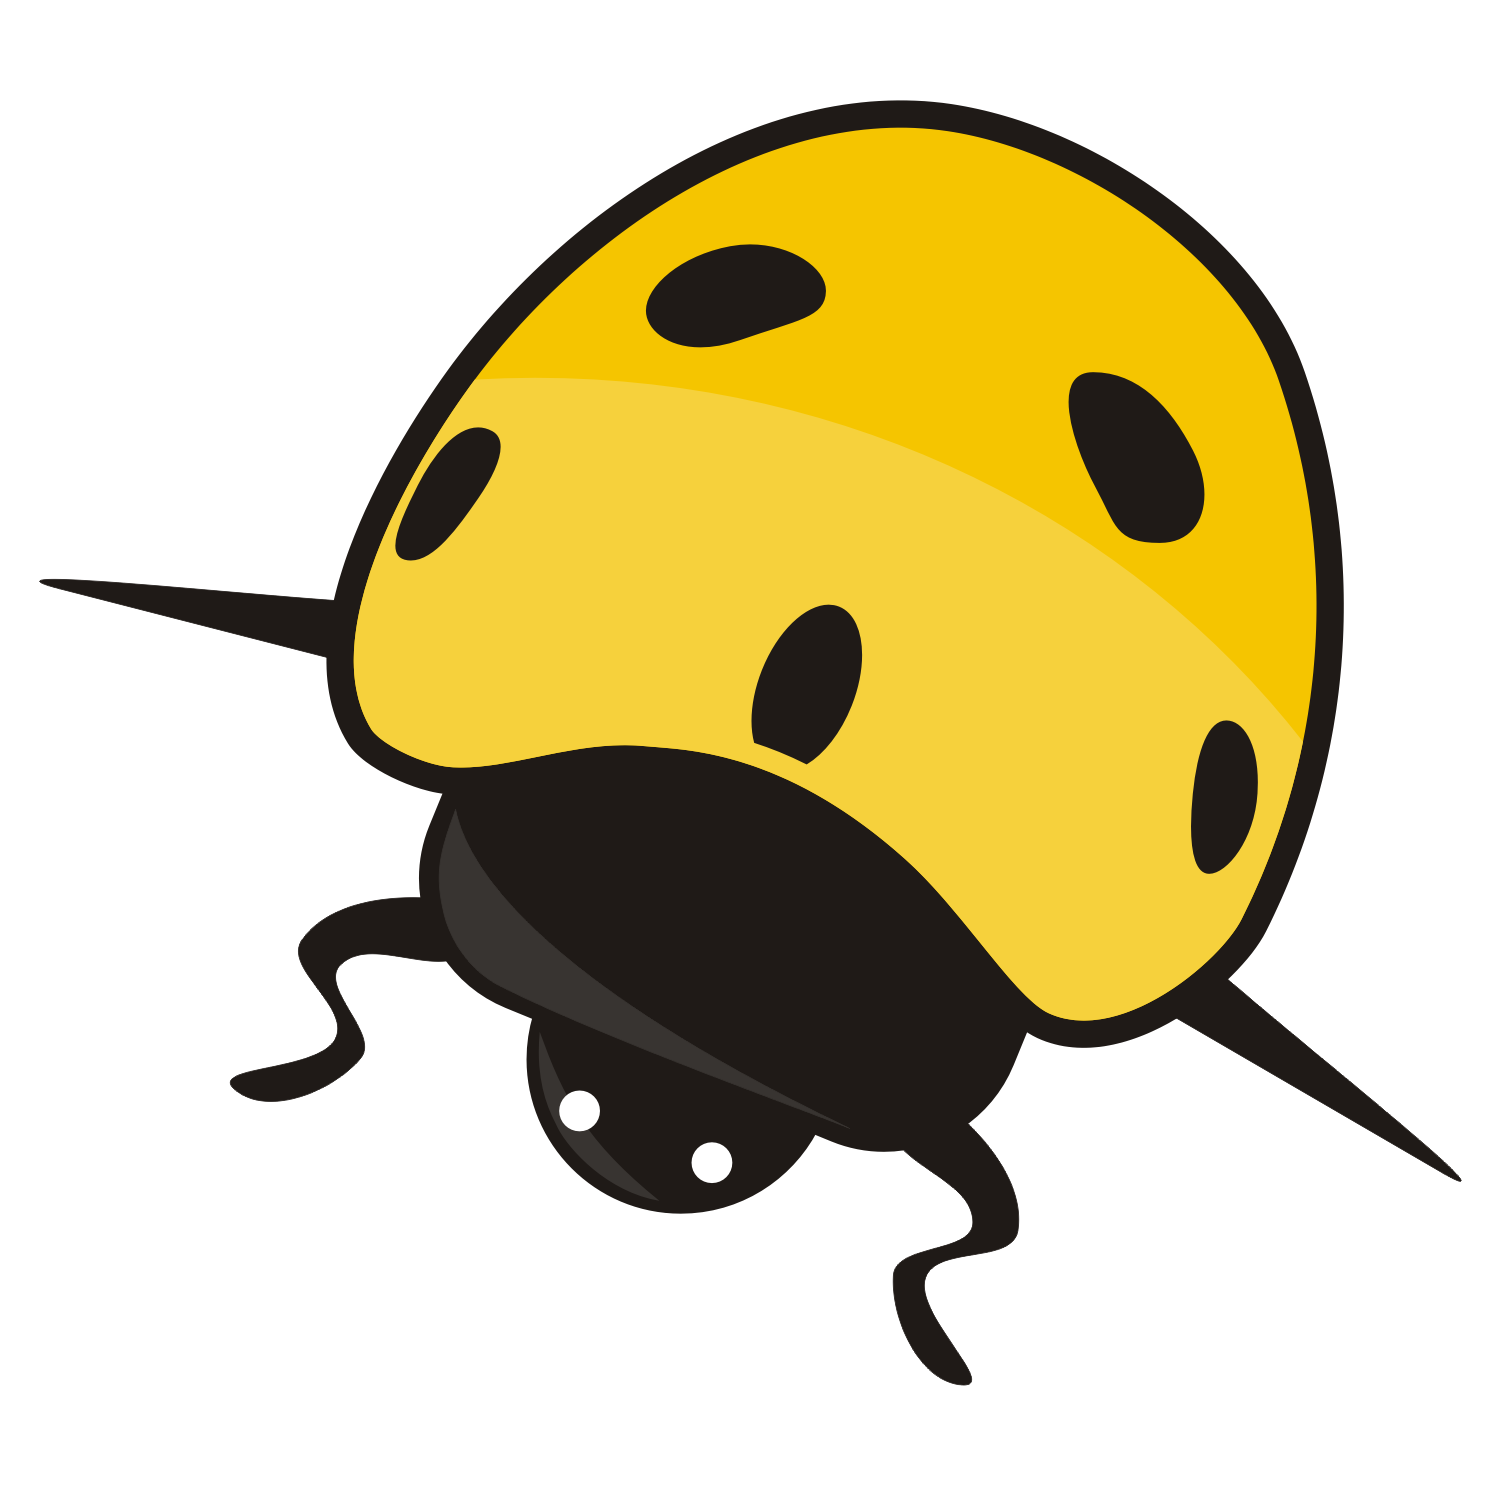 Detailed vector illustration of a ladybird